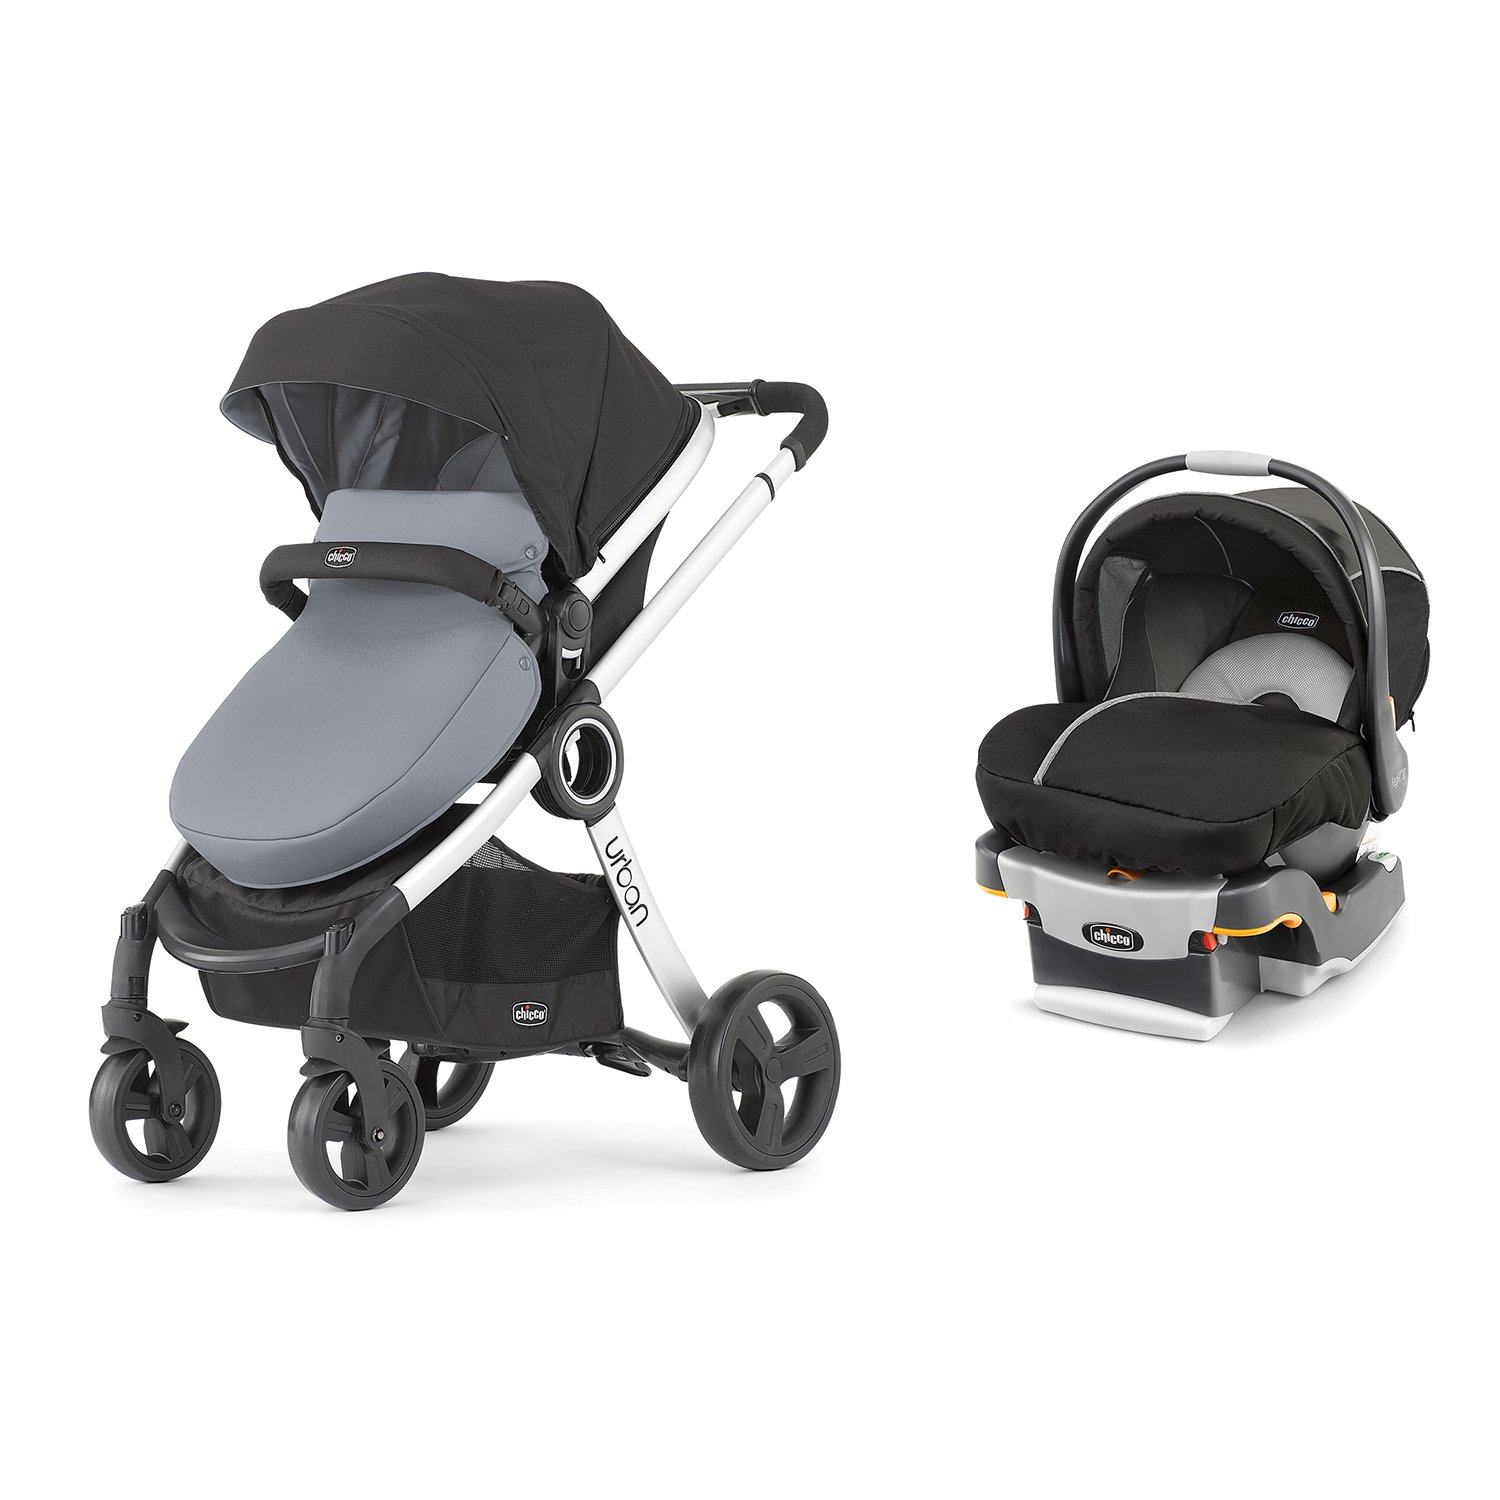 Amazon Chicco 6 in 1 Urban Modular Stroller Infant Car Seat and Base Travel System Baby